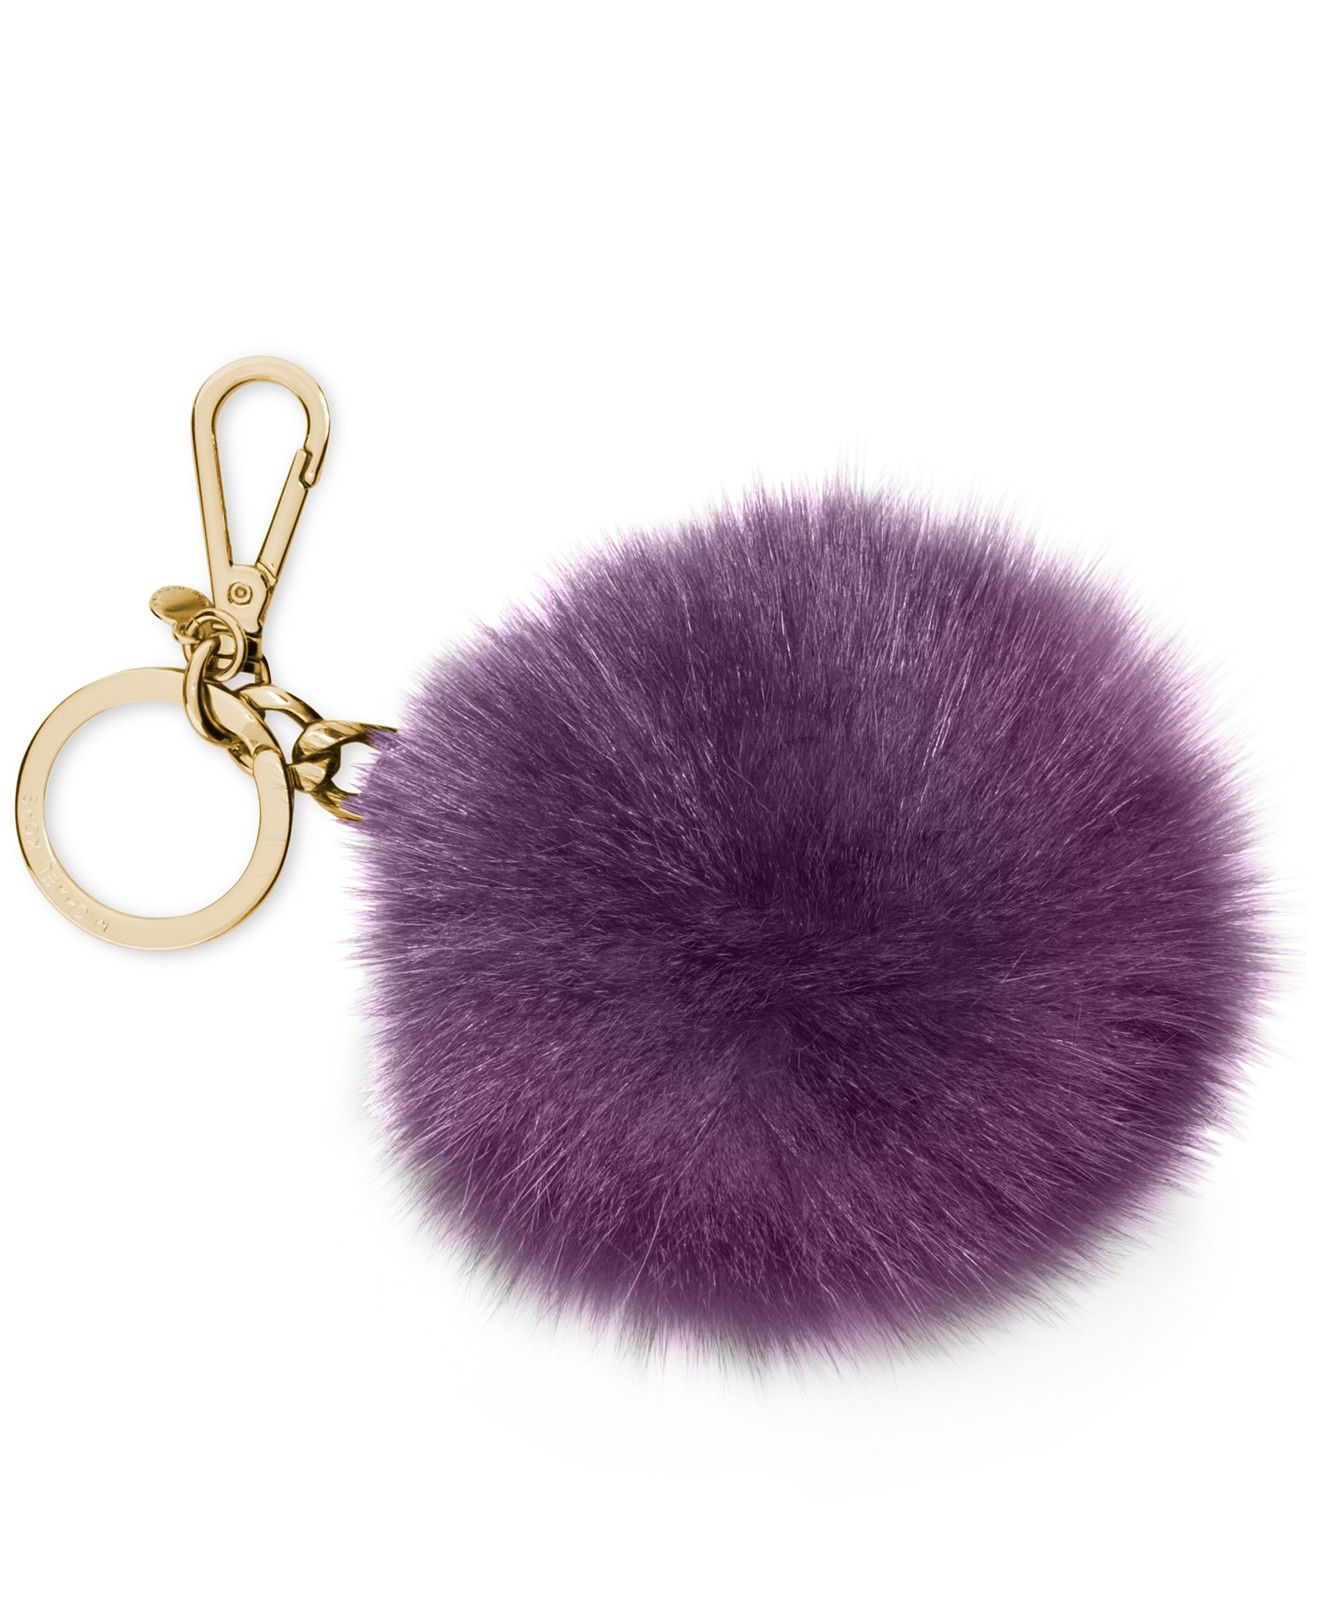 45294ef058 MICHAEL Michael Kors Extra Large Fur Pom Pom Key Chain - Handbags    Accessories - Macy s